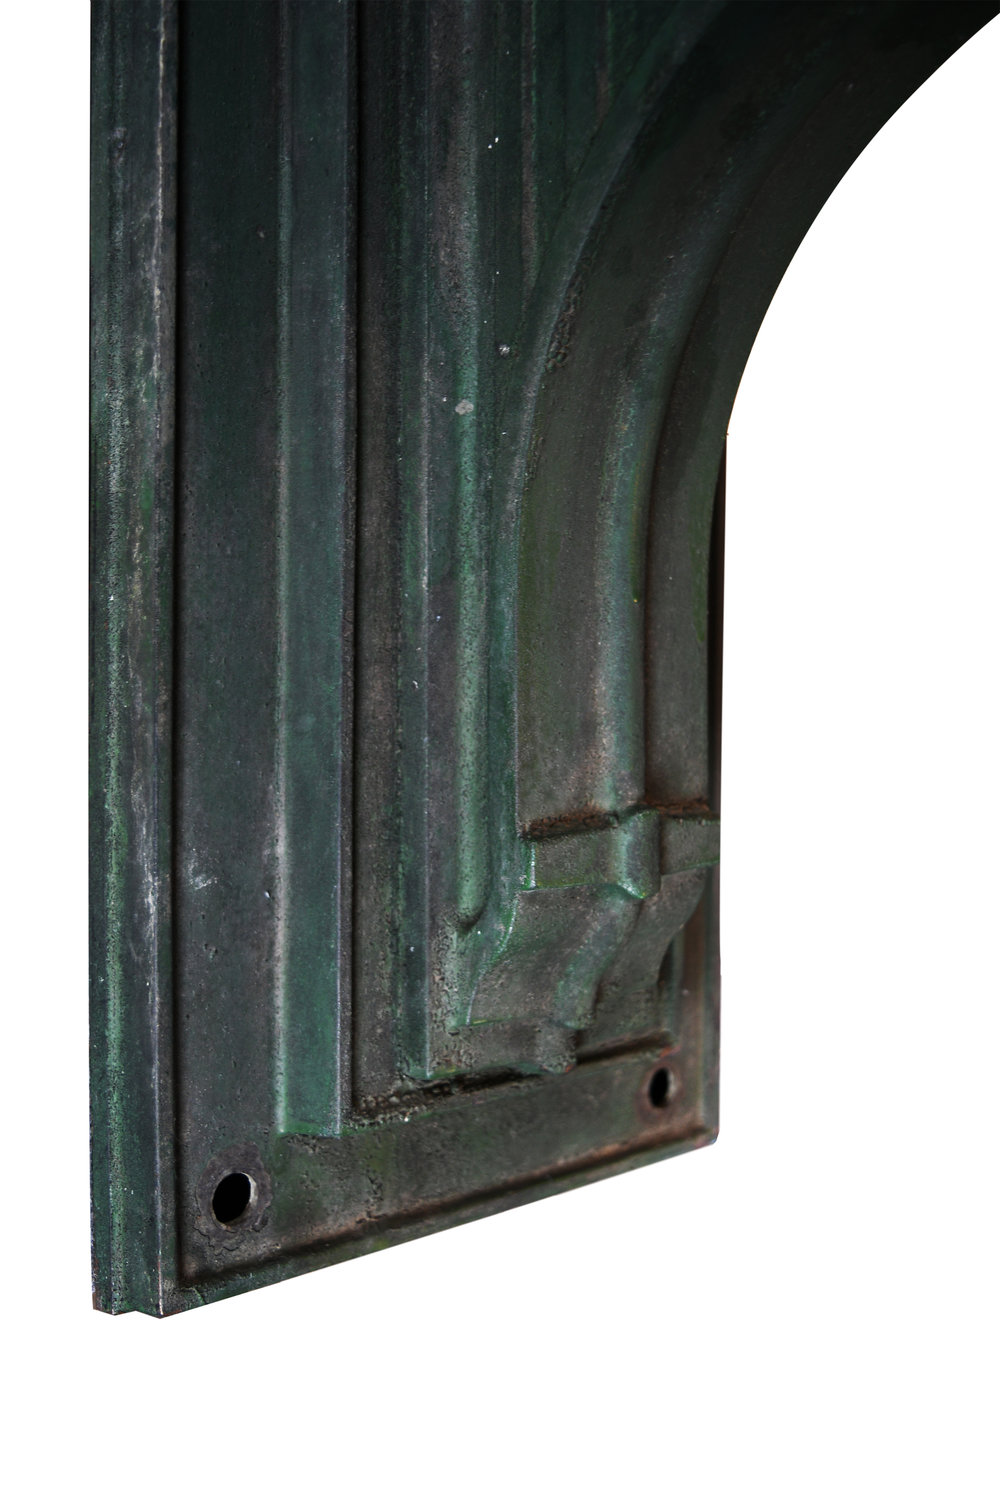 47584-bronze-cast-federal-exterior-sconce-20.jpg